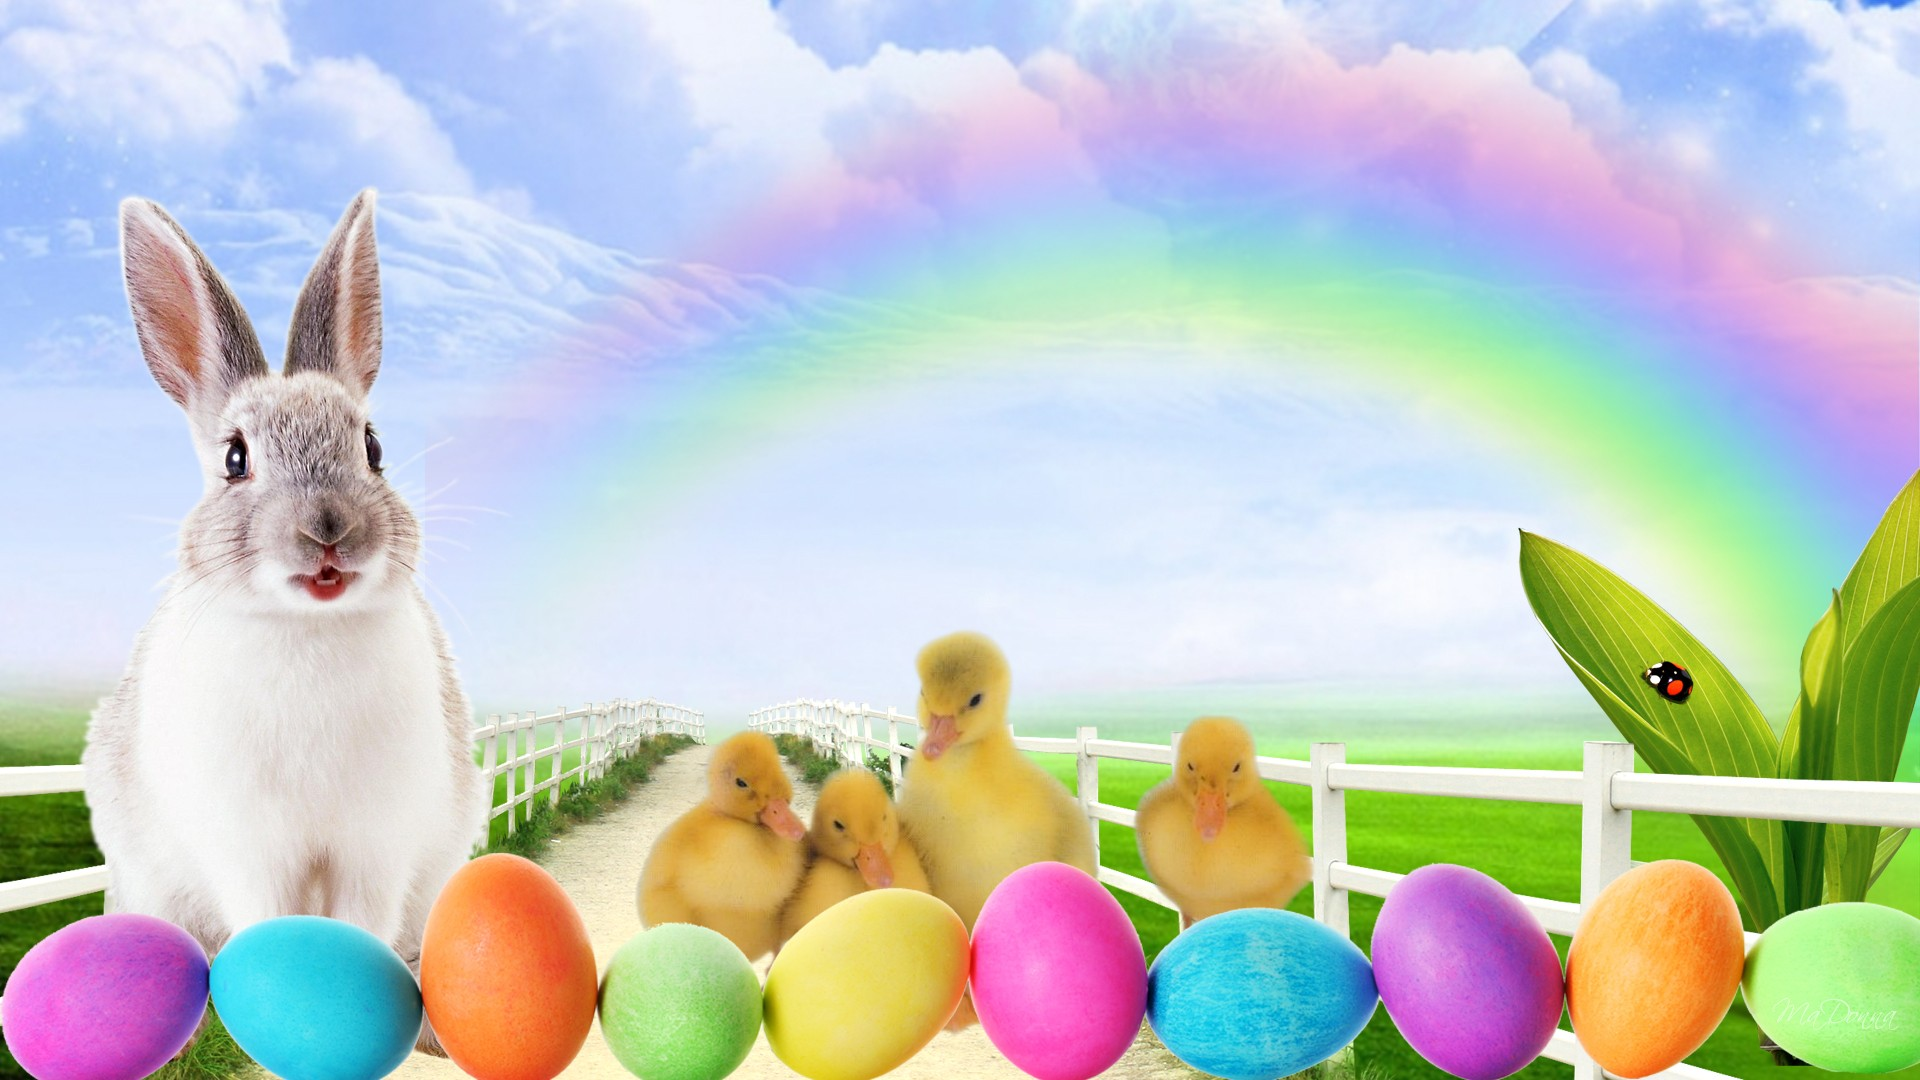 hd wallpaper easter bunny lane clouds colored   Background 1920x1080